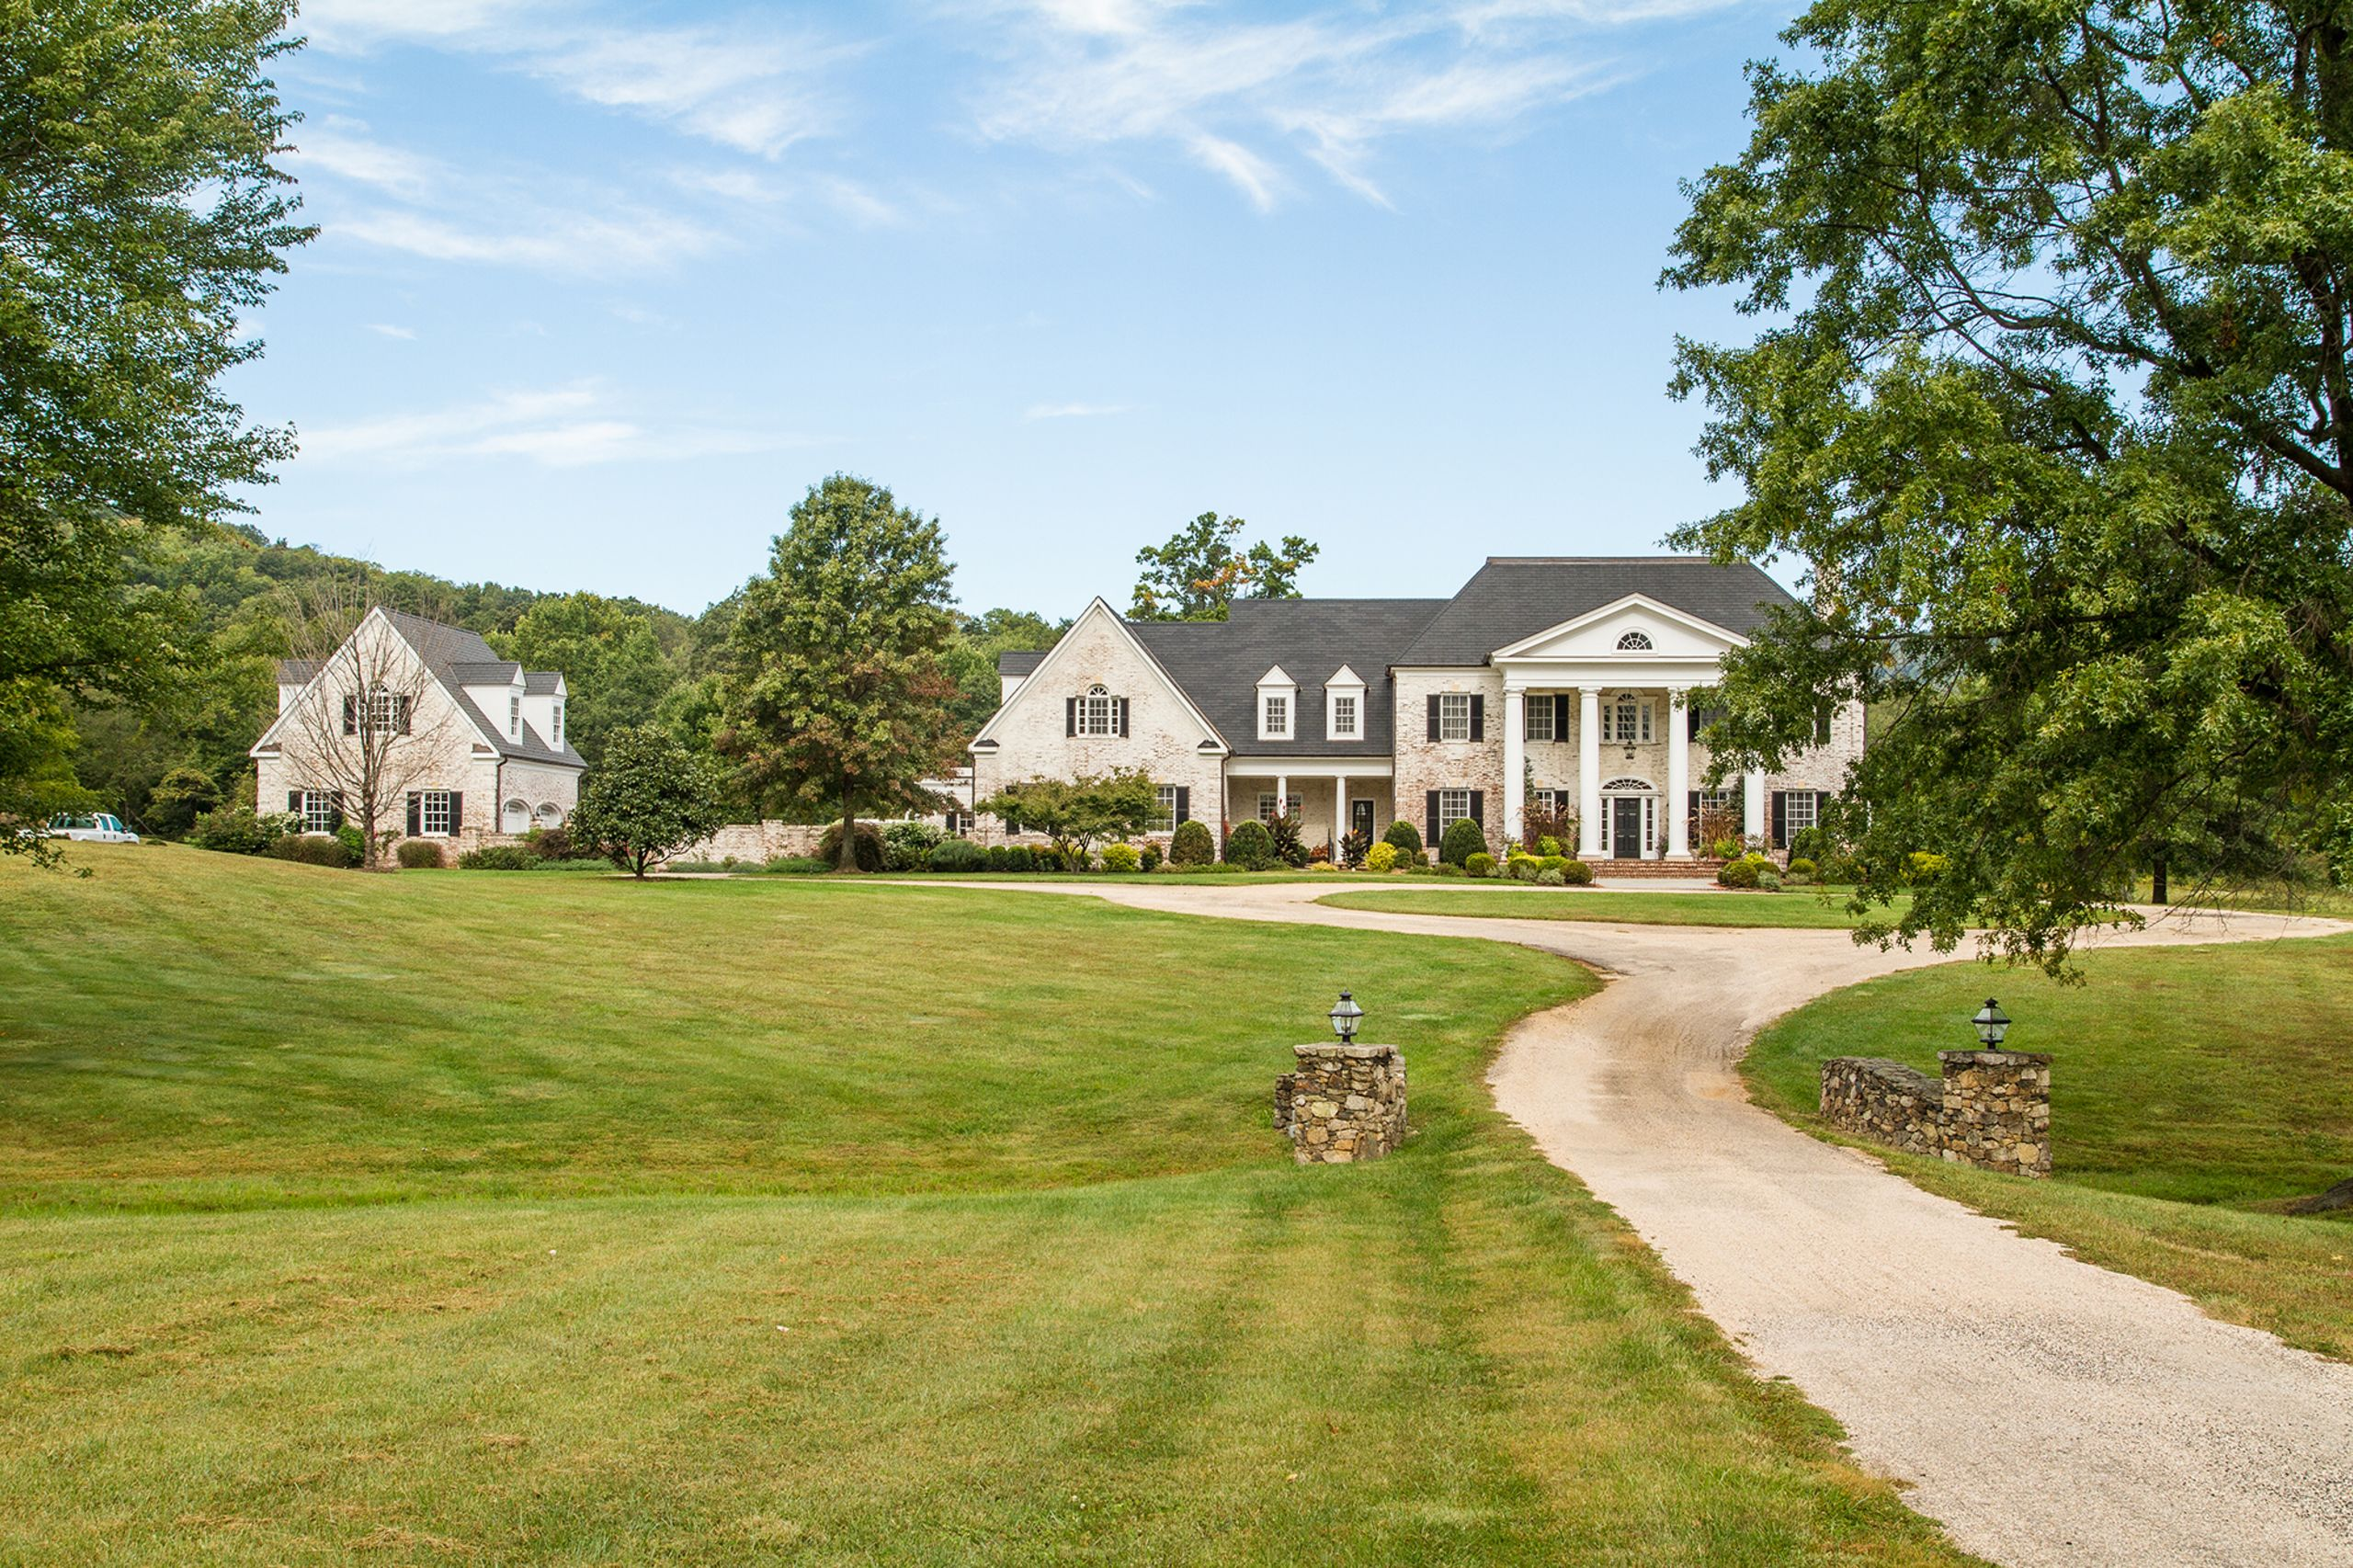 Stunning Estate in Upperville with Pool, Tennis Court and Mountain Views